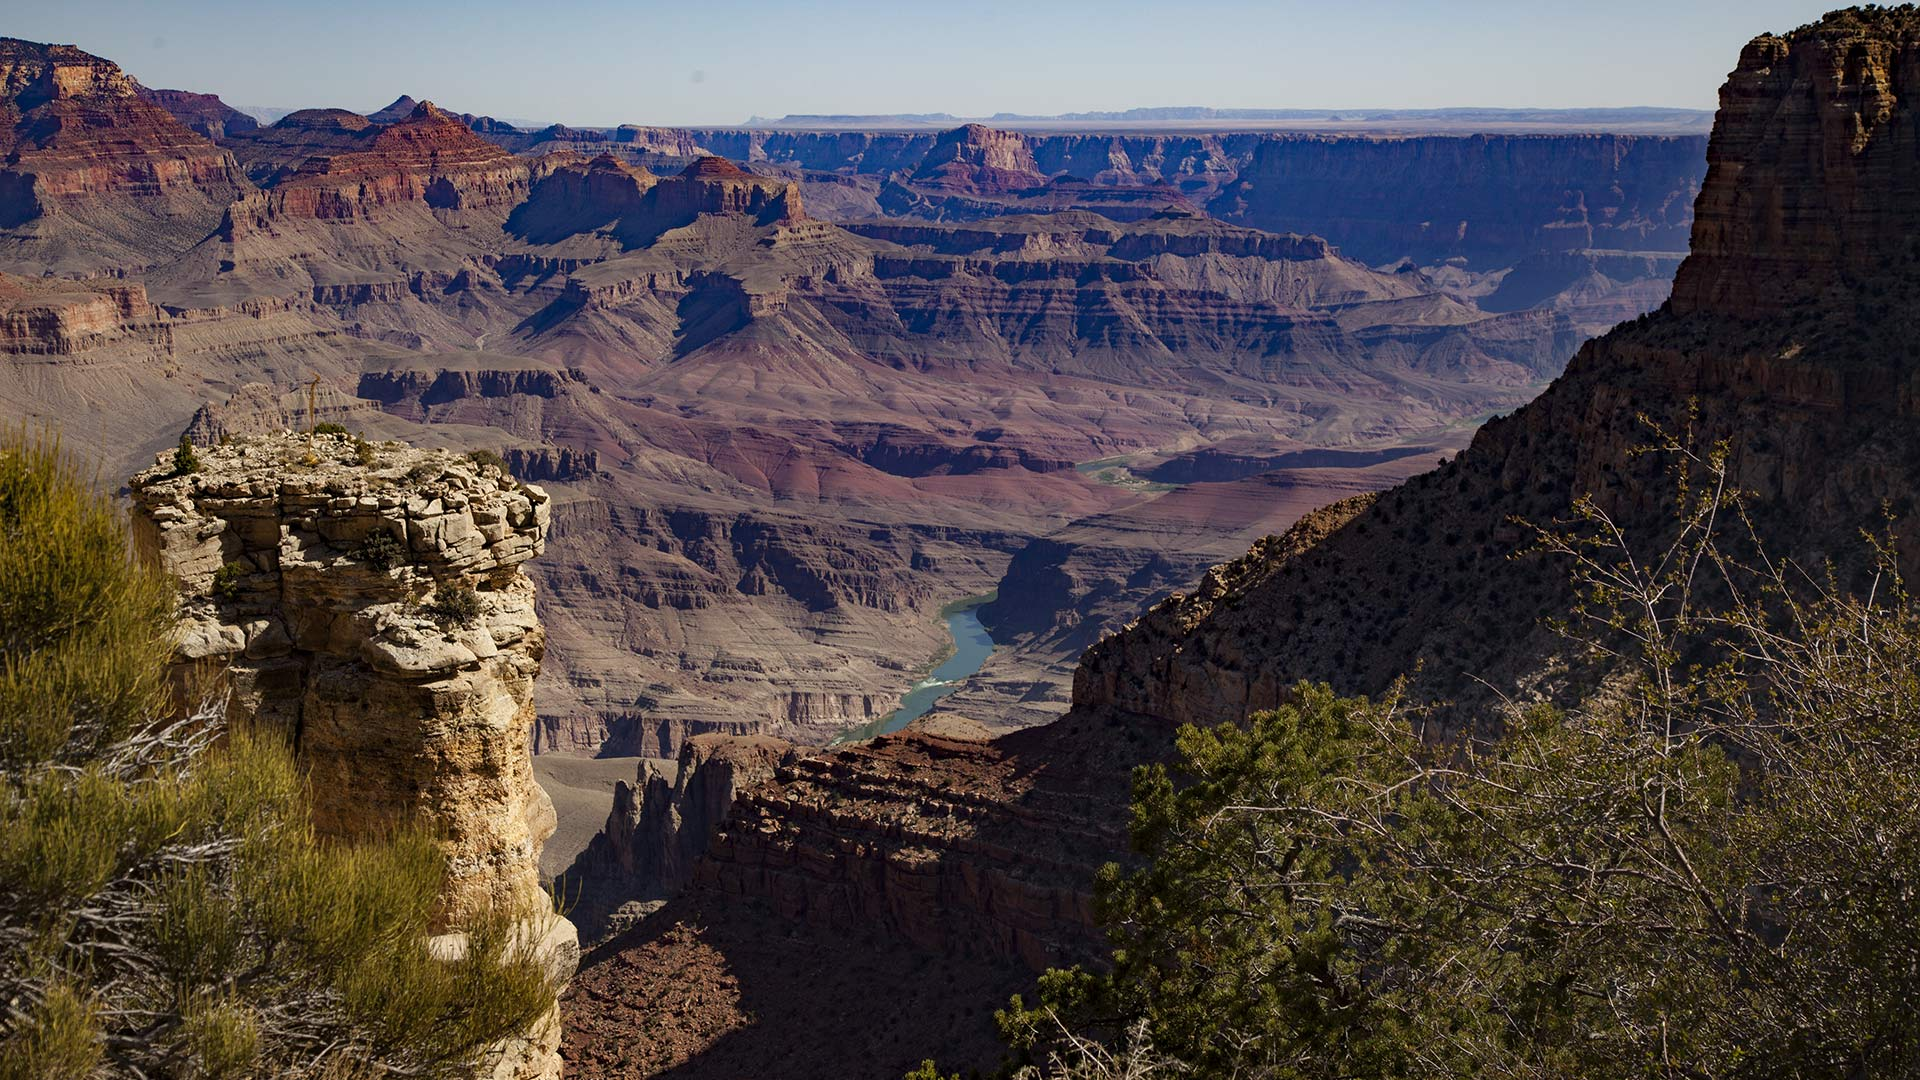 The Colorado River snakes through the Grand Canyon.